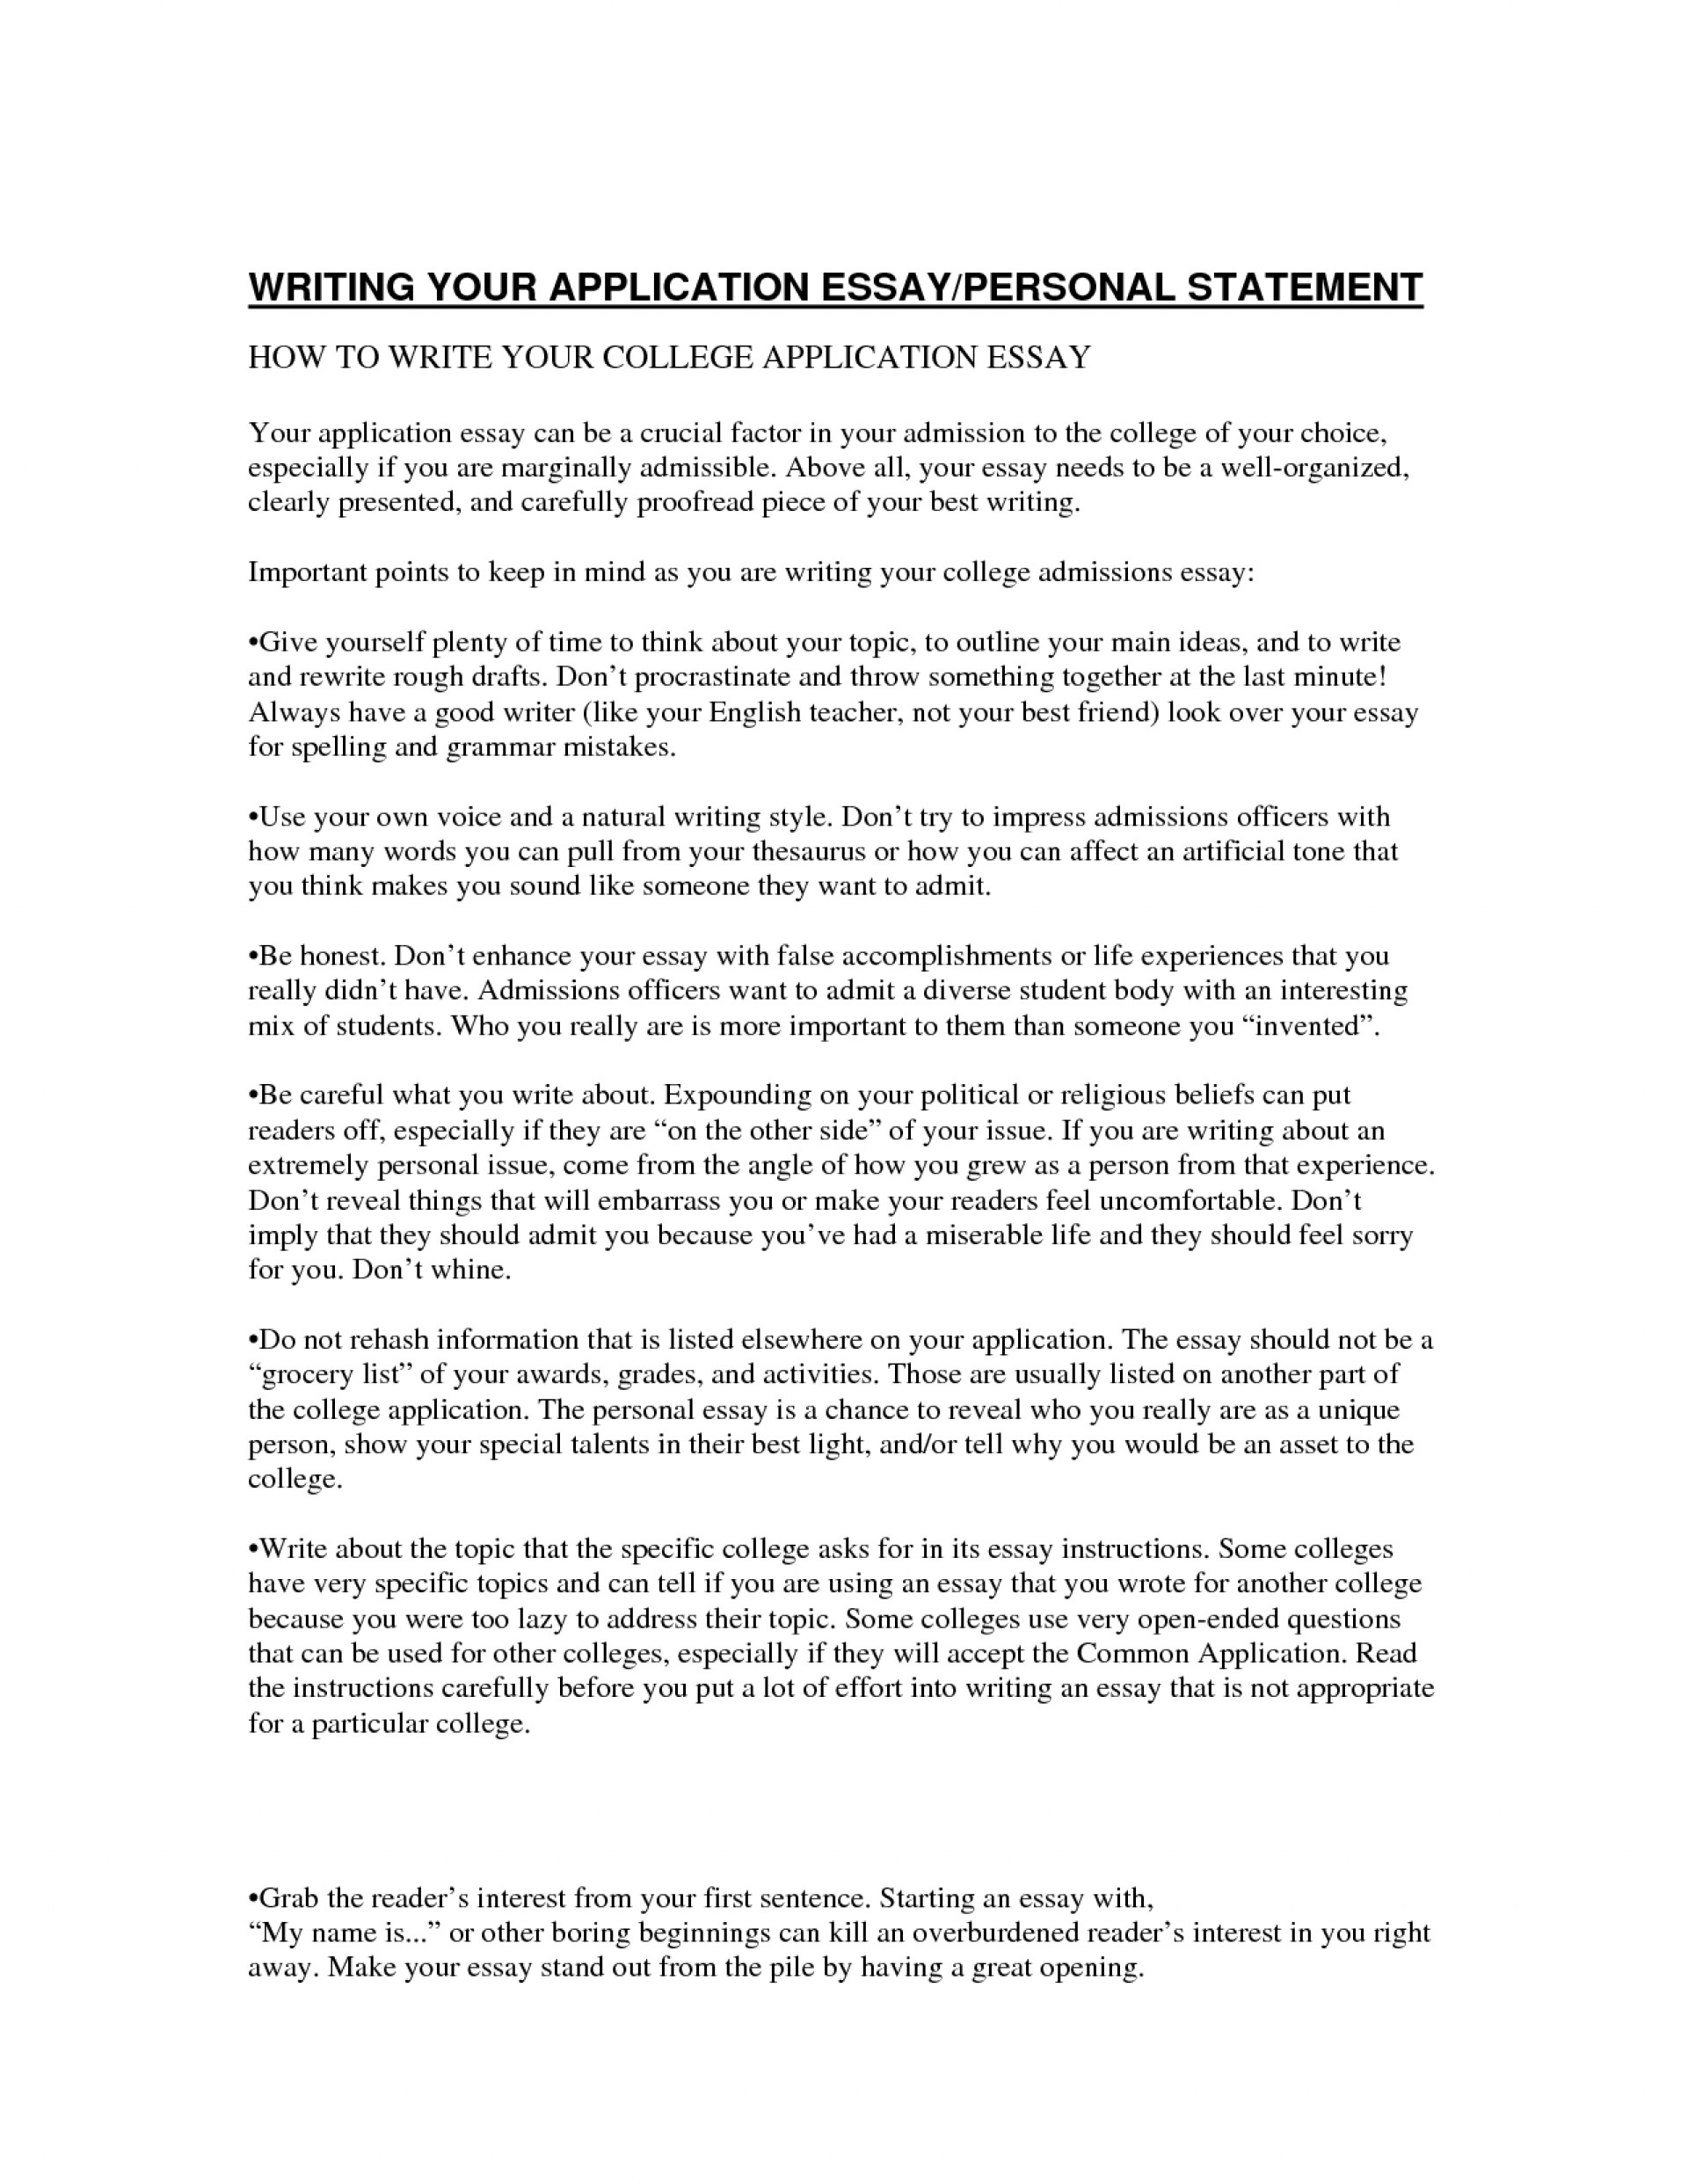 006 Scholarships That Don T Require Essays Essay Remarkable Are There Any Don't 2019 Canadian 1920